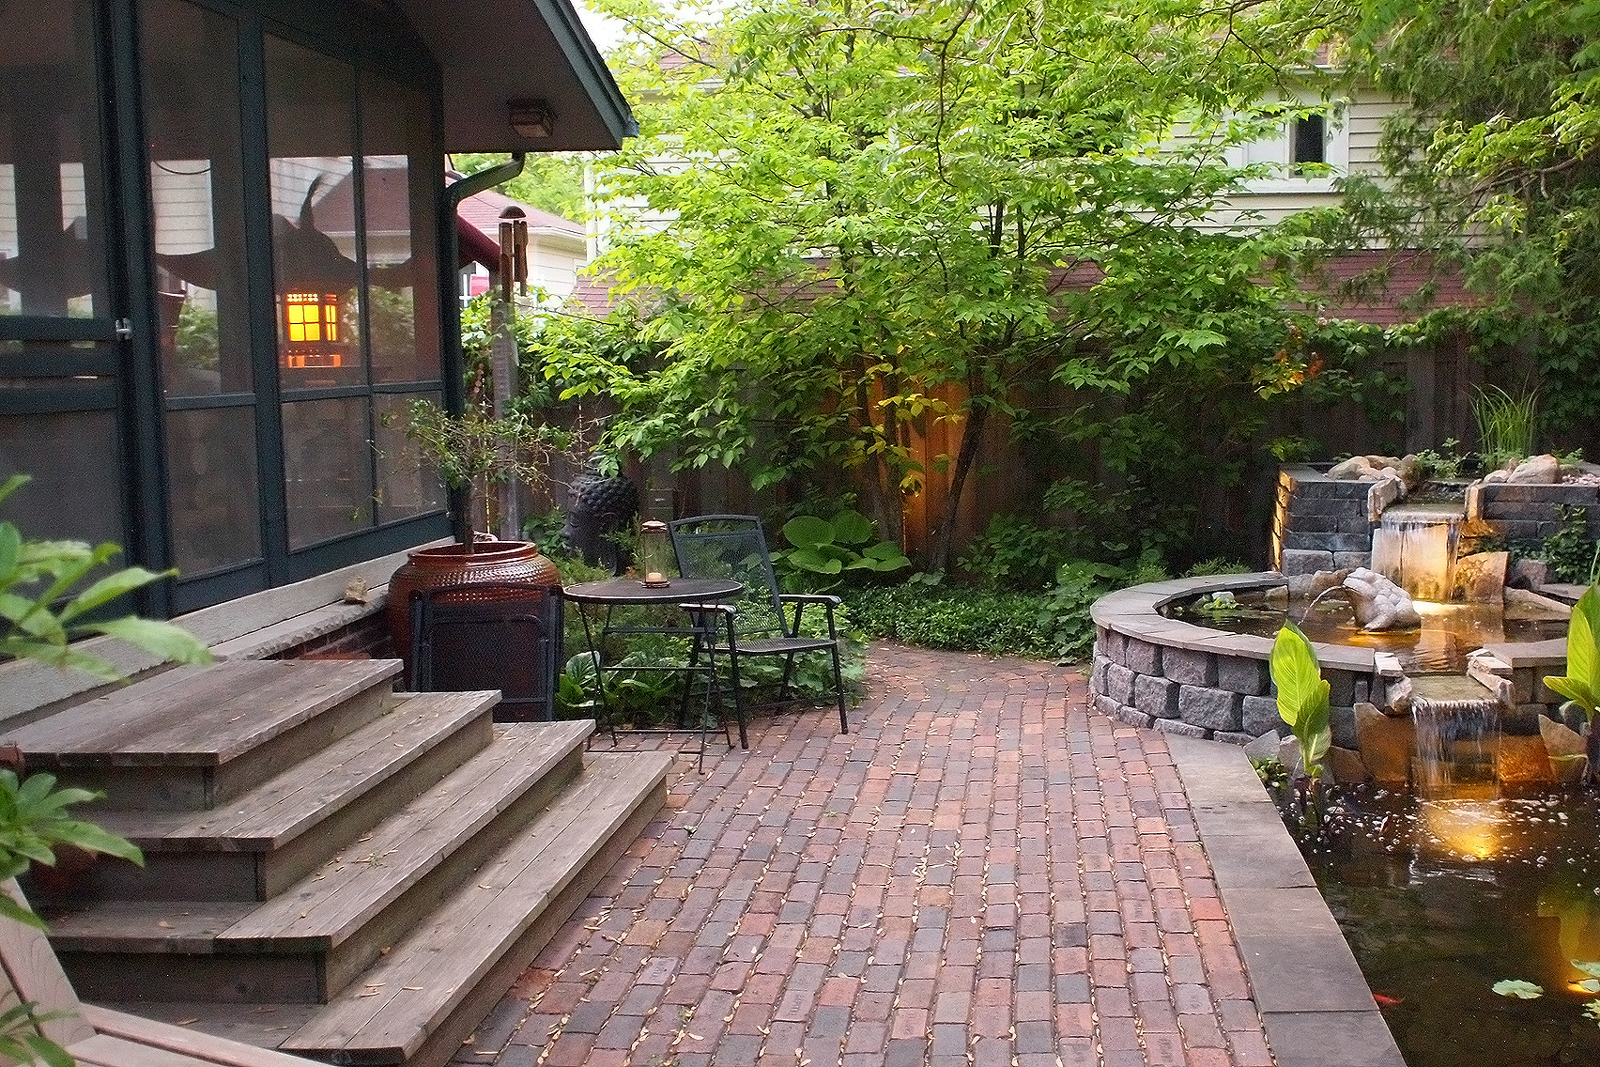 Paver Patio Ideas | Stone Patio Ideas | HouseLogic on Rock Patio Designs  id=46273